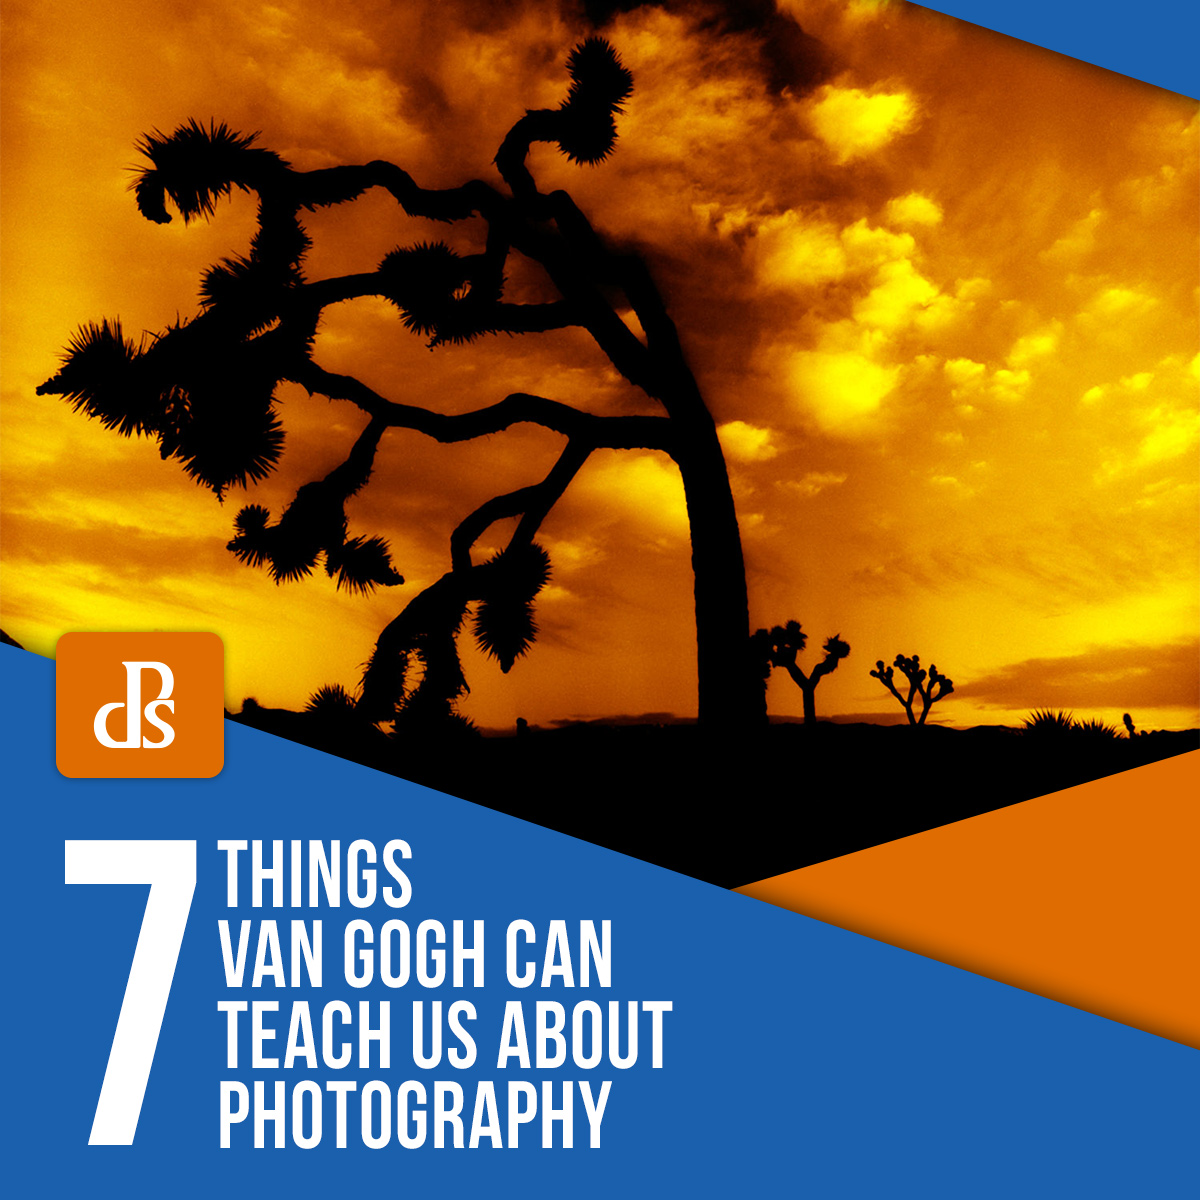 7 Things Van Gogh Can Teach Us About Photography